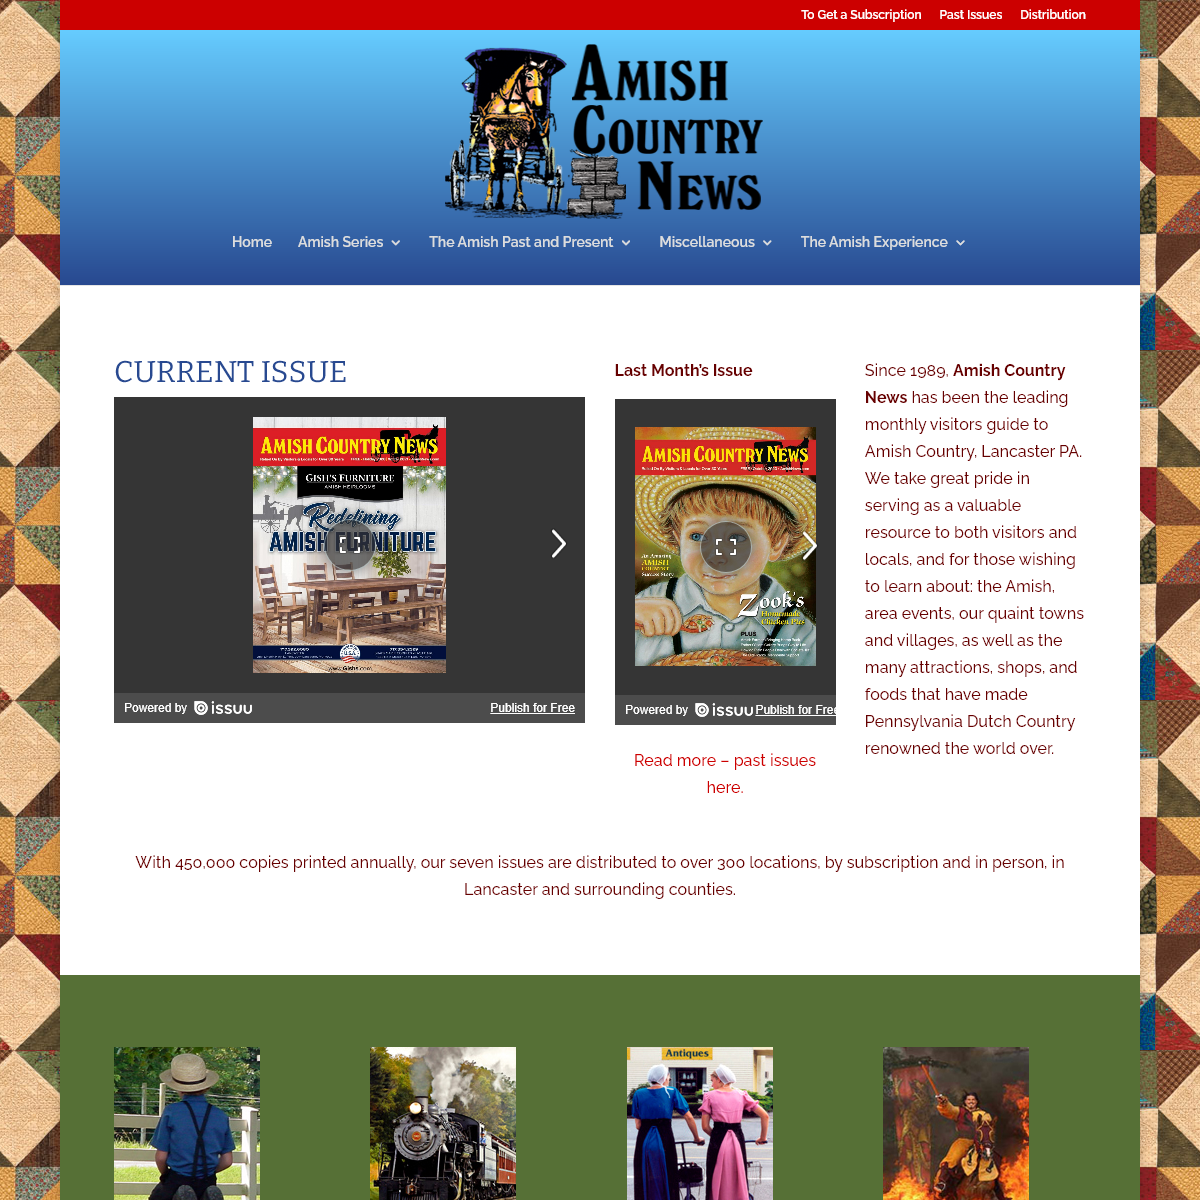 Amish News - Leading monthly visitors guide to Amish Country, Lancaster PA